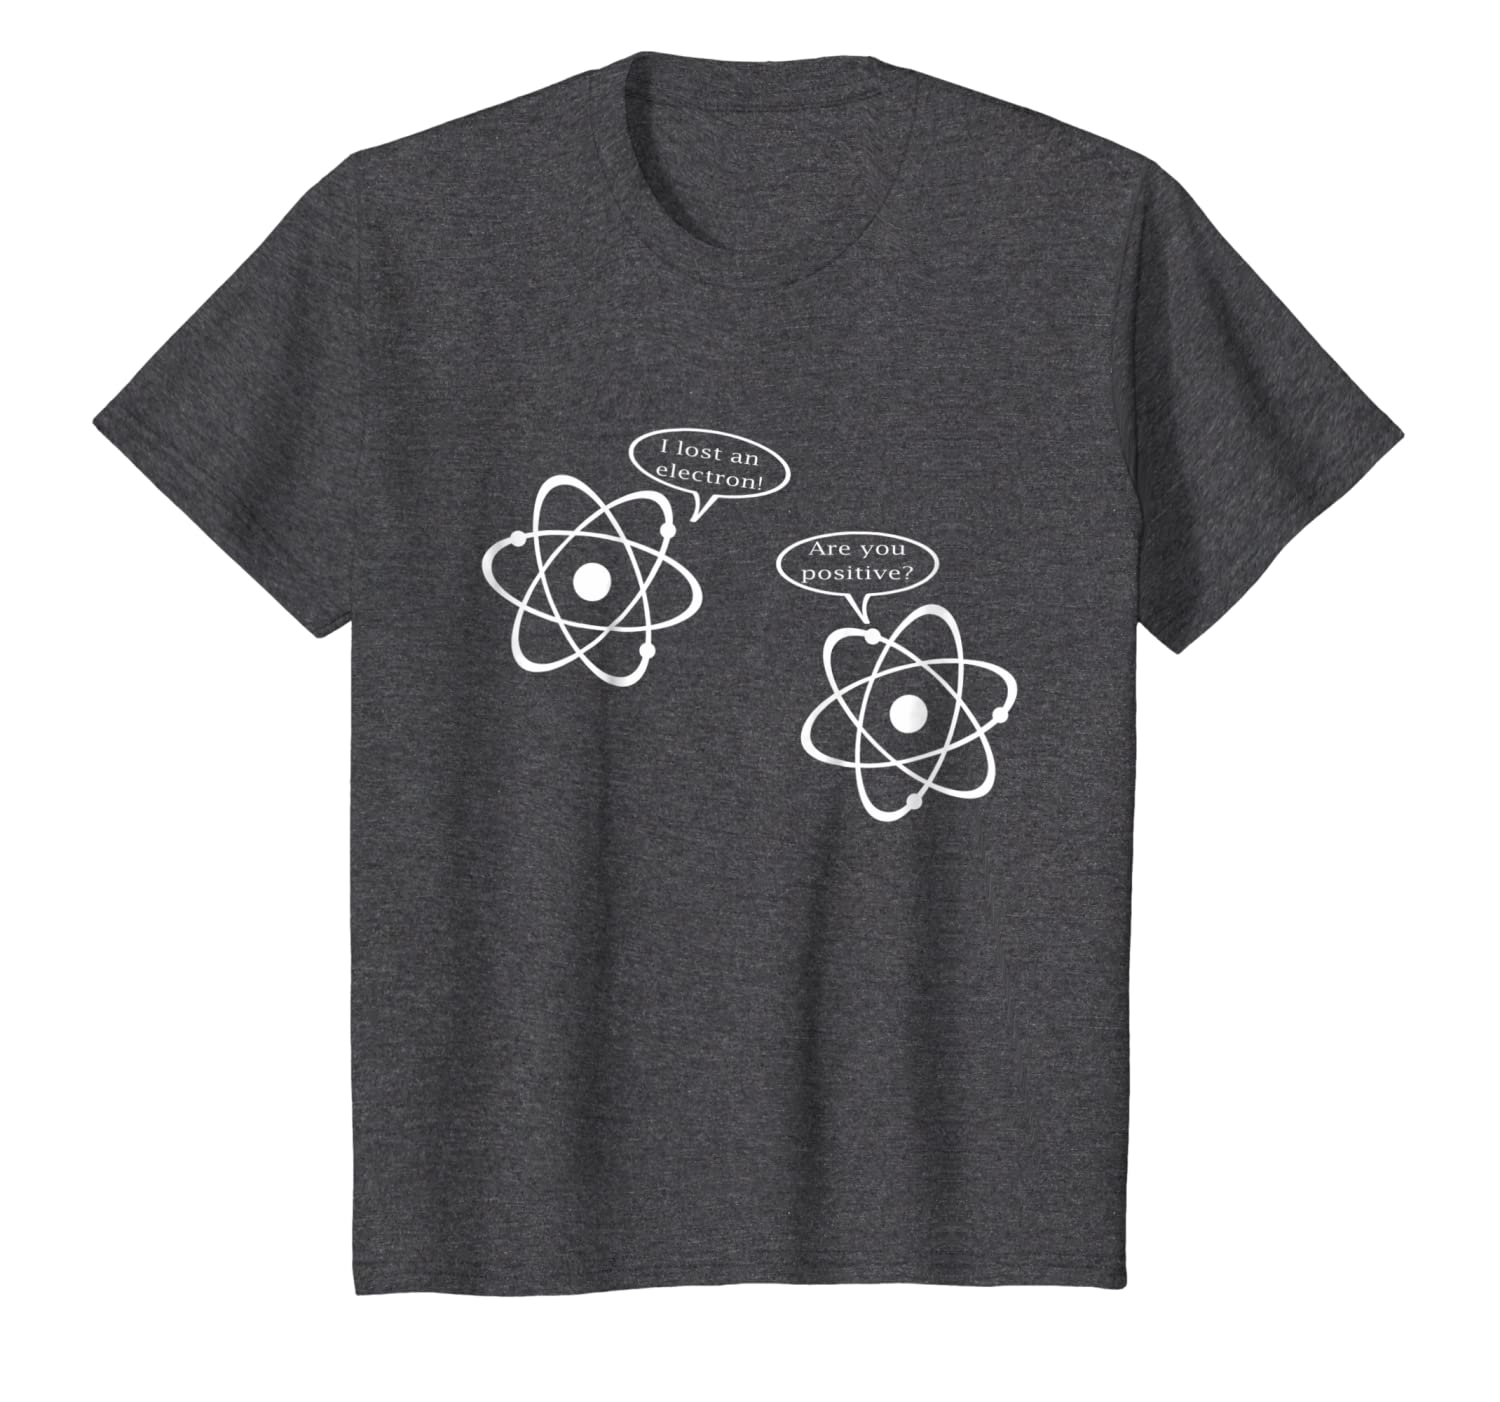 e83eff9a4 Amazon.com: I Lost An Electron. Are You Positive? Funny Science T-Shirt:  Clothing